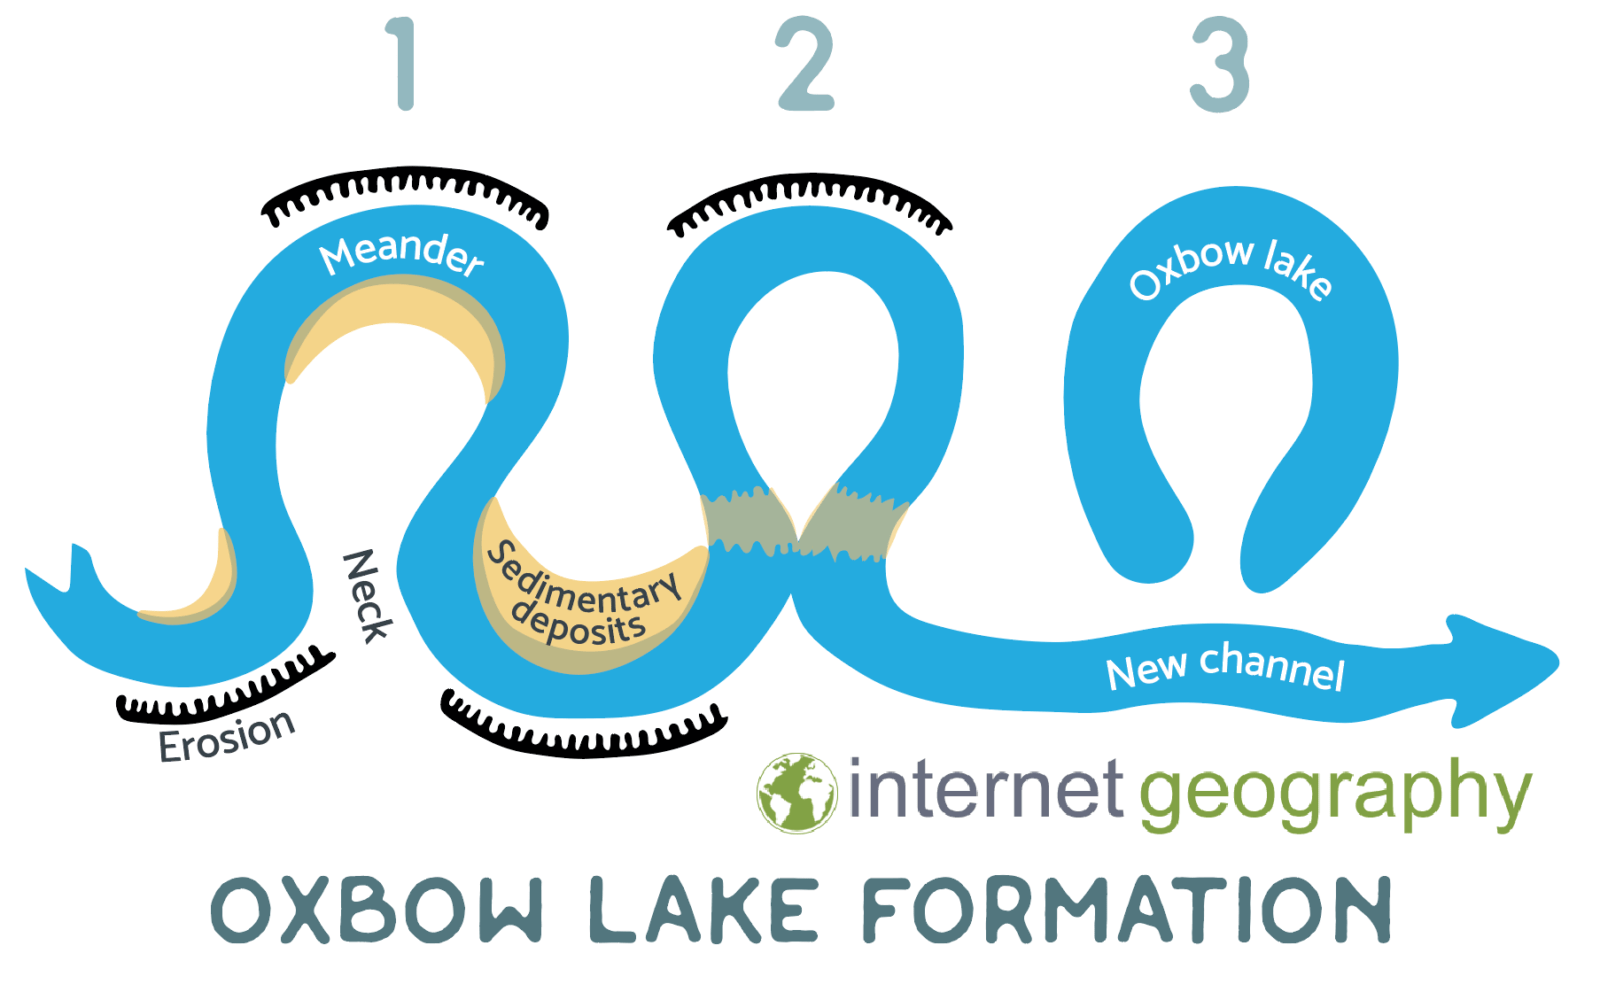 Formation of an oxbow lake